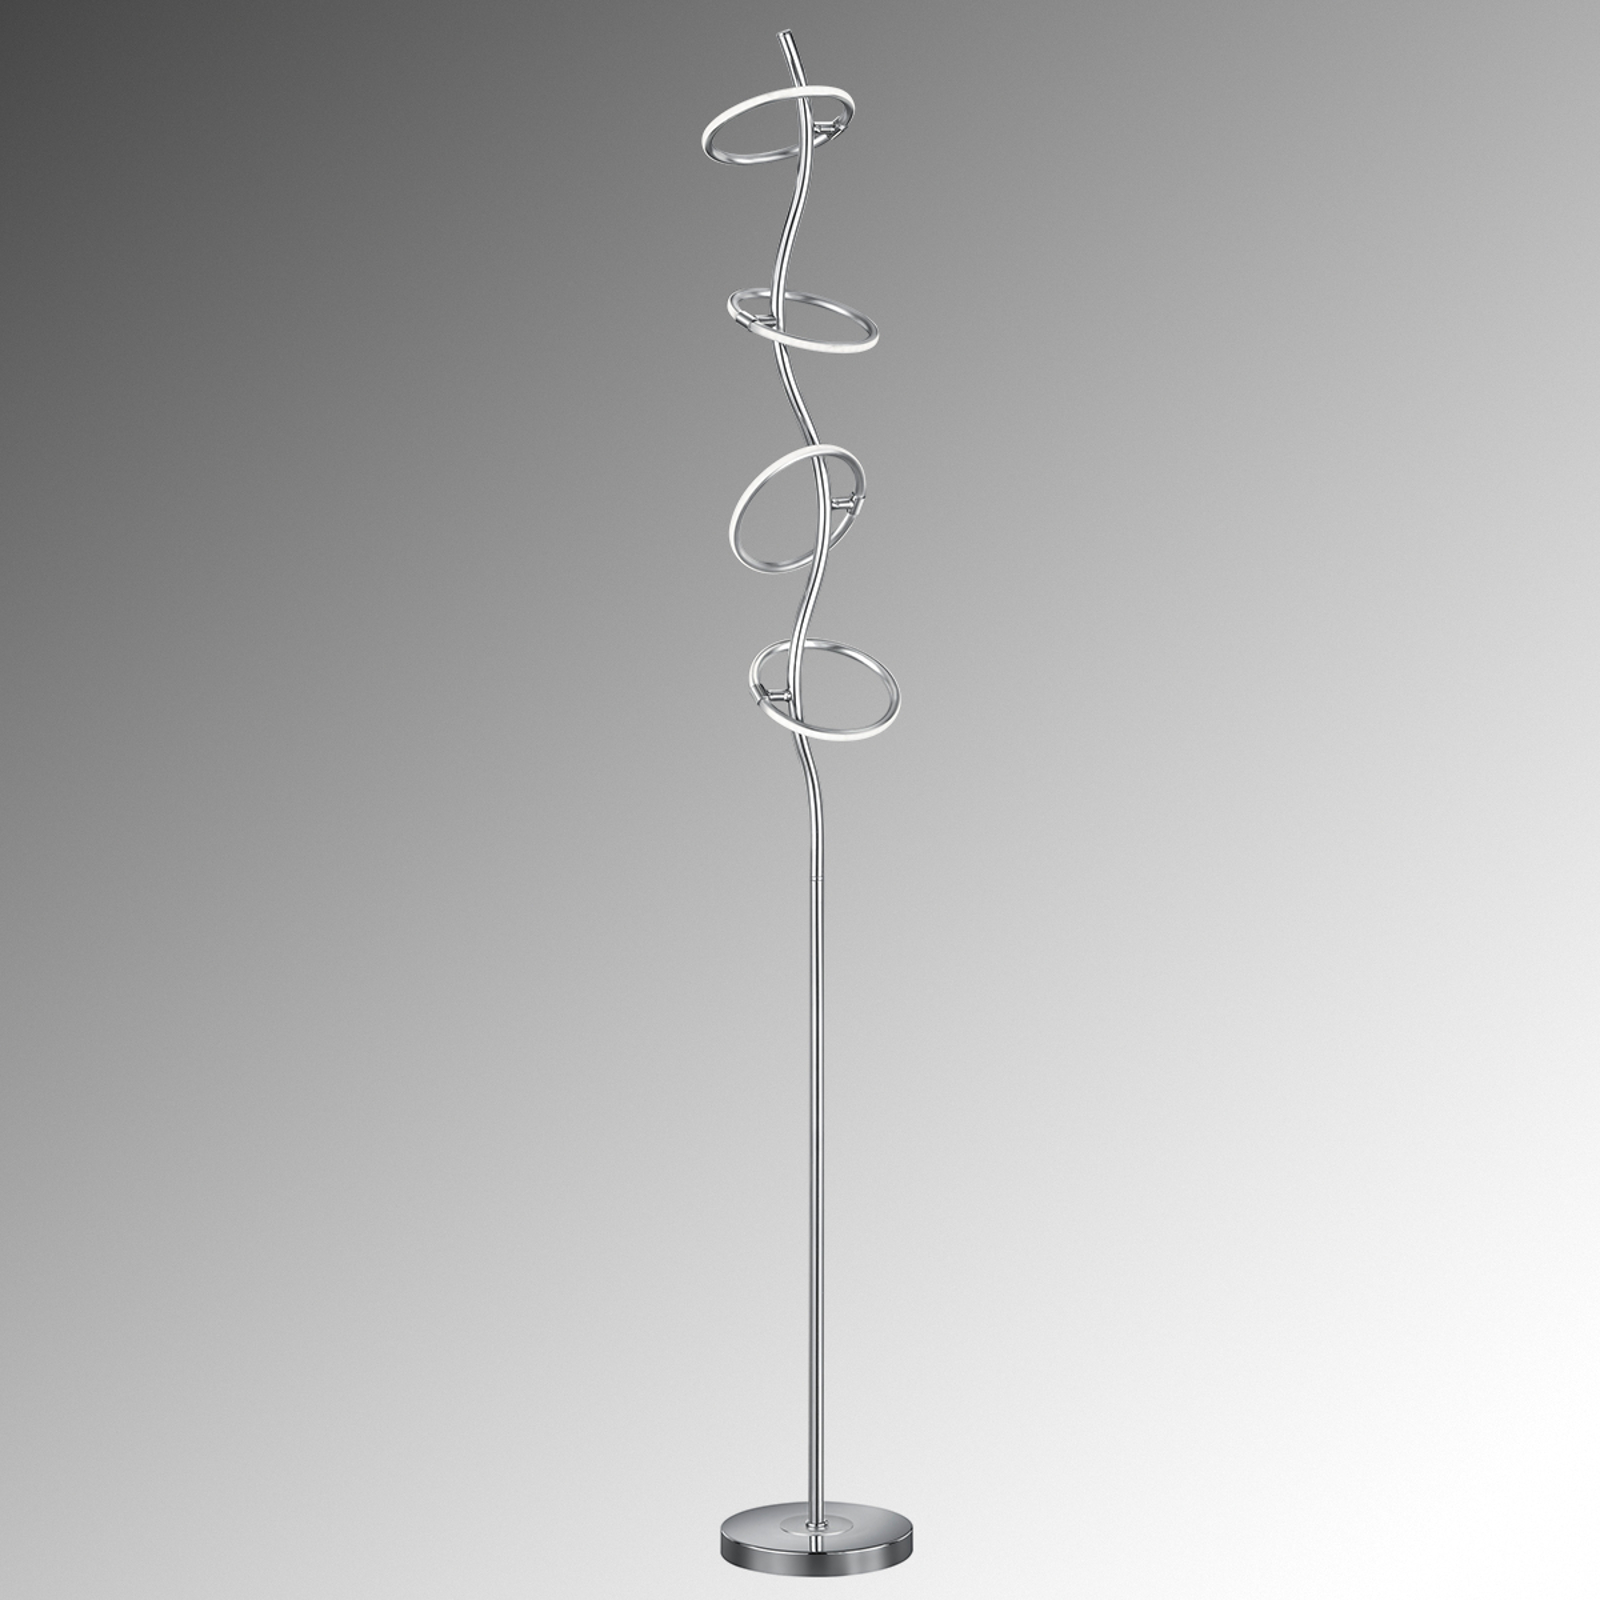 Beau lampadaire LED Olympus 4 lampes dimmable